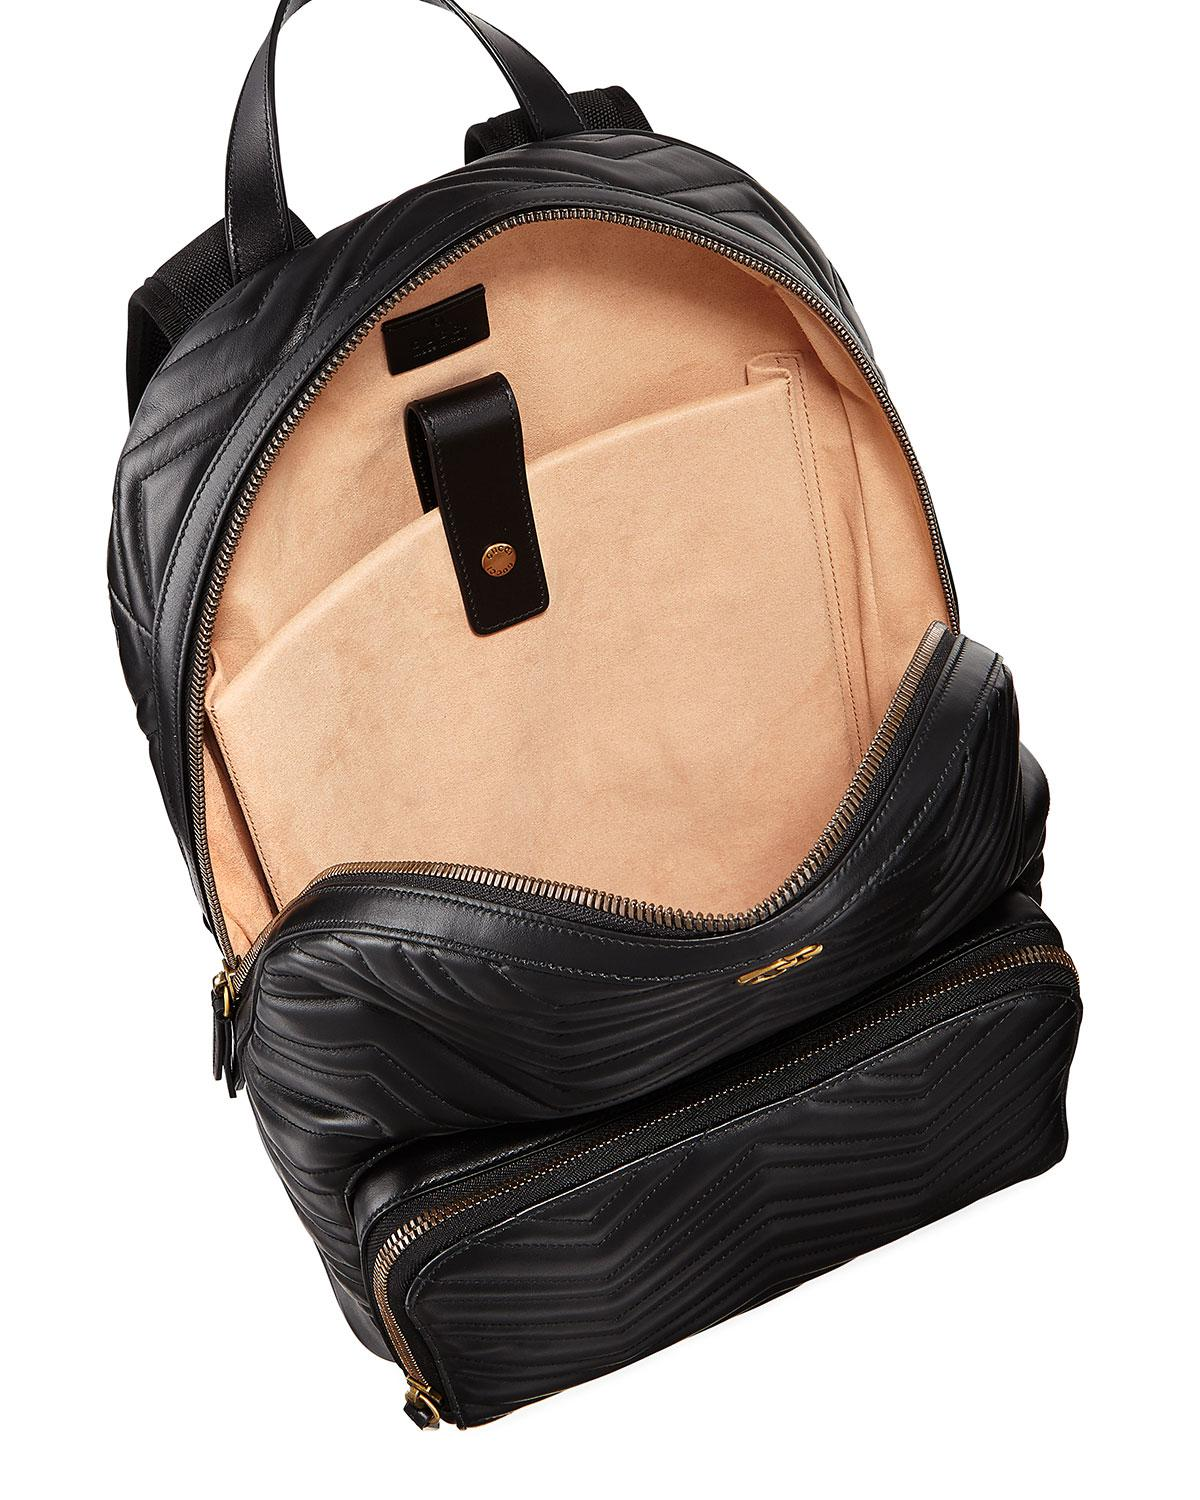 973812b8d59 Gucci Men s GG Marmont Quilted Leather Backpack in Black - Lyst